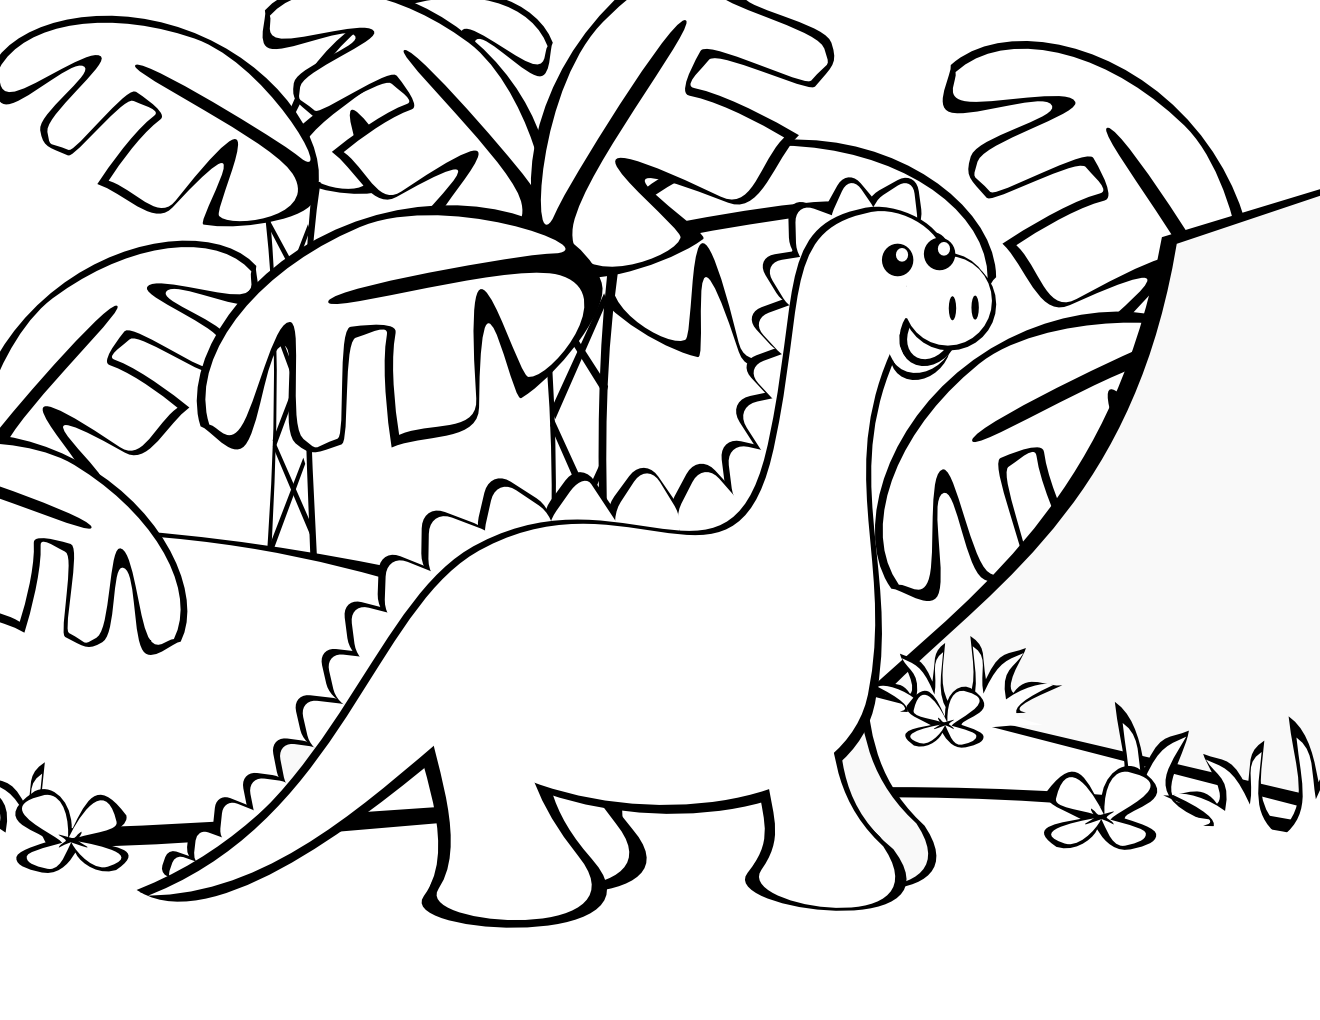 dinosaurs colouring pages baby dinosaur coloring pages to download and print for free pages colouring dinosaurs